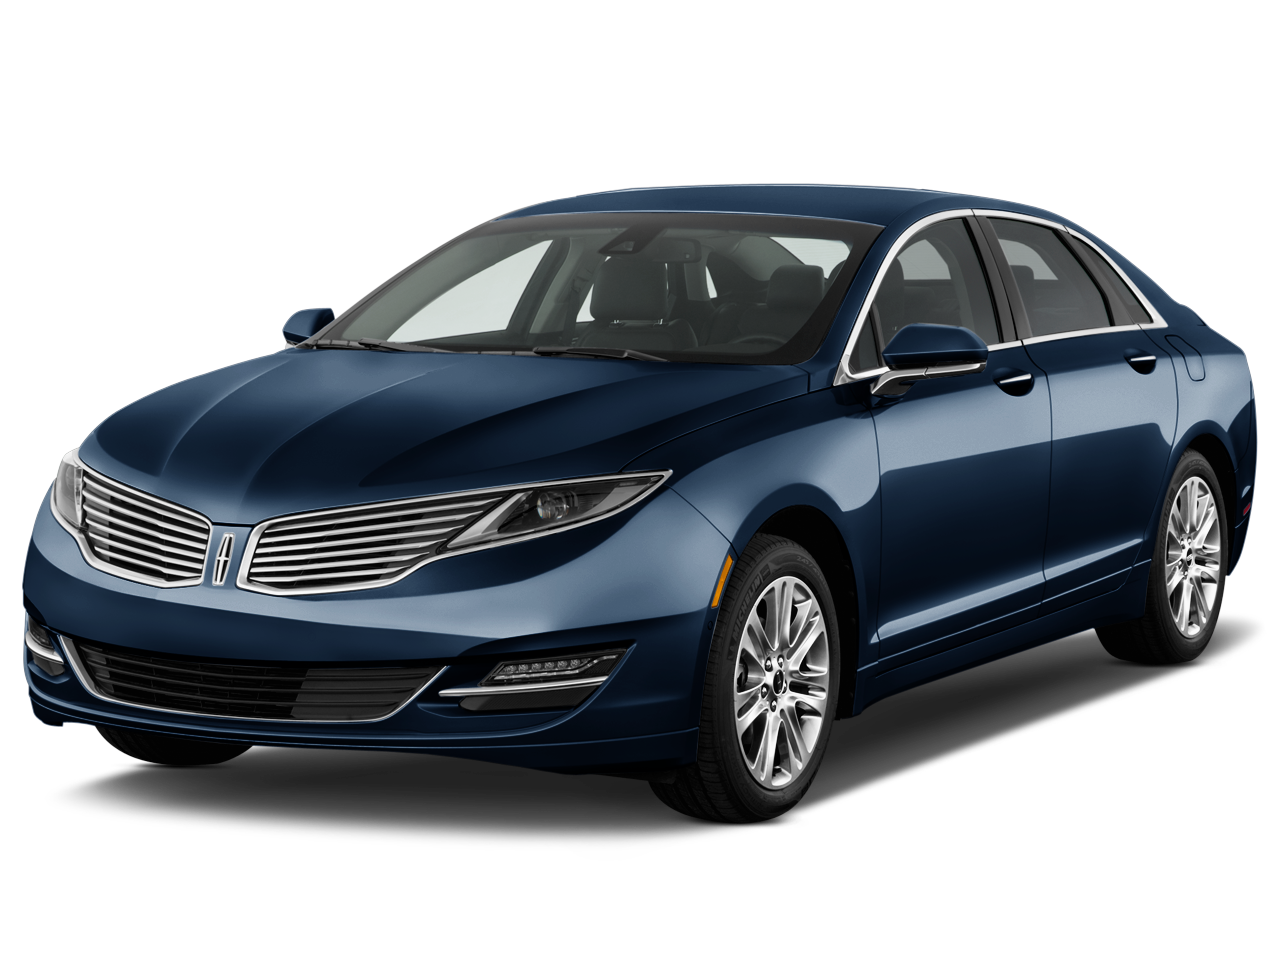 Used One-Owner 2014 Lincoln MKZ Base in Portsmouth, NH - Portsmouth ...